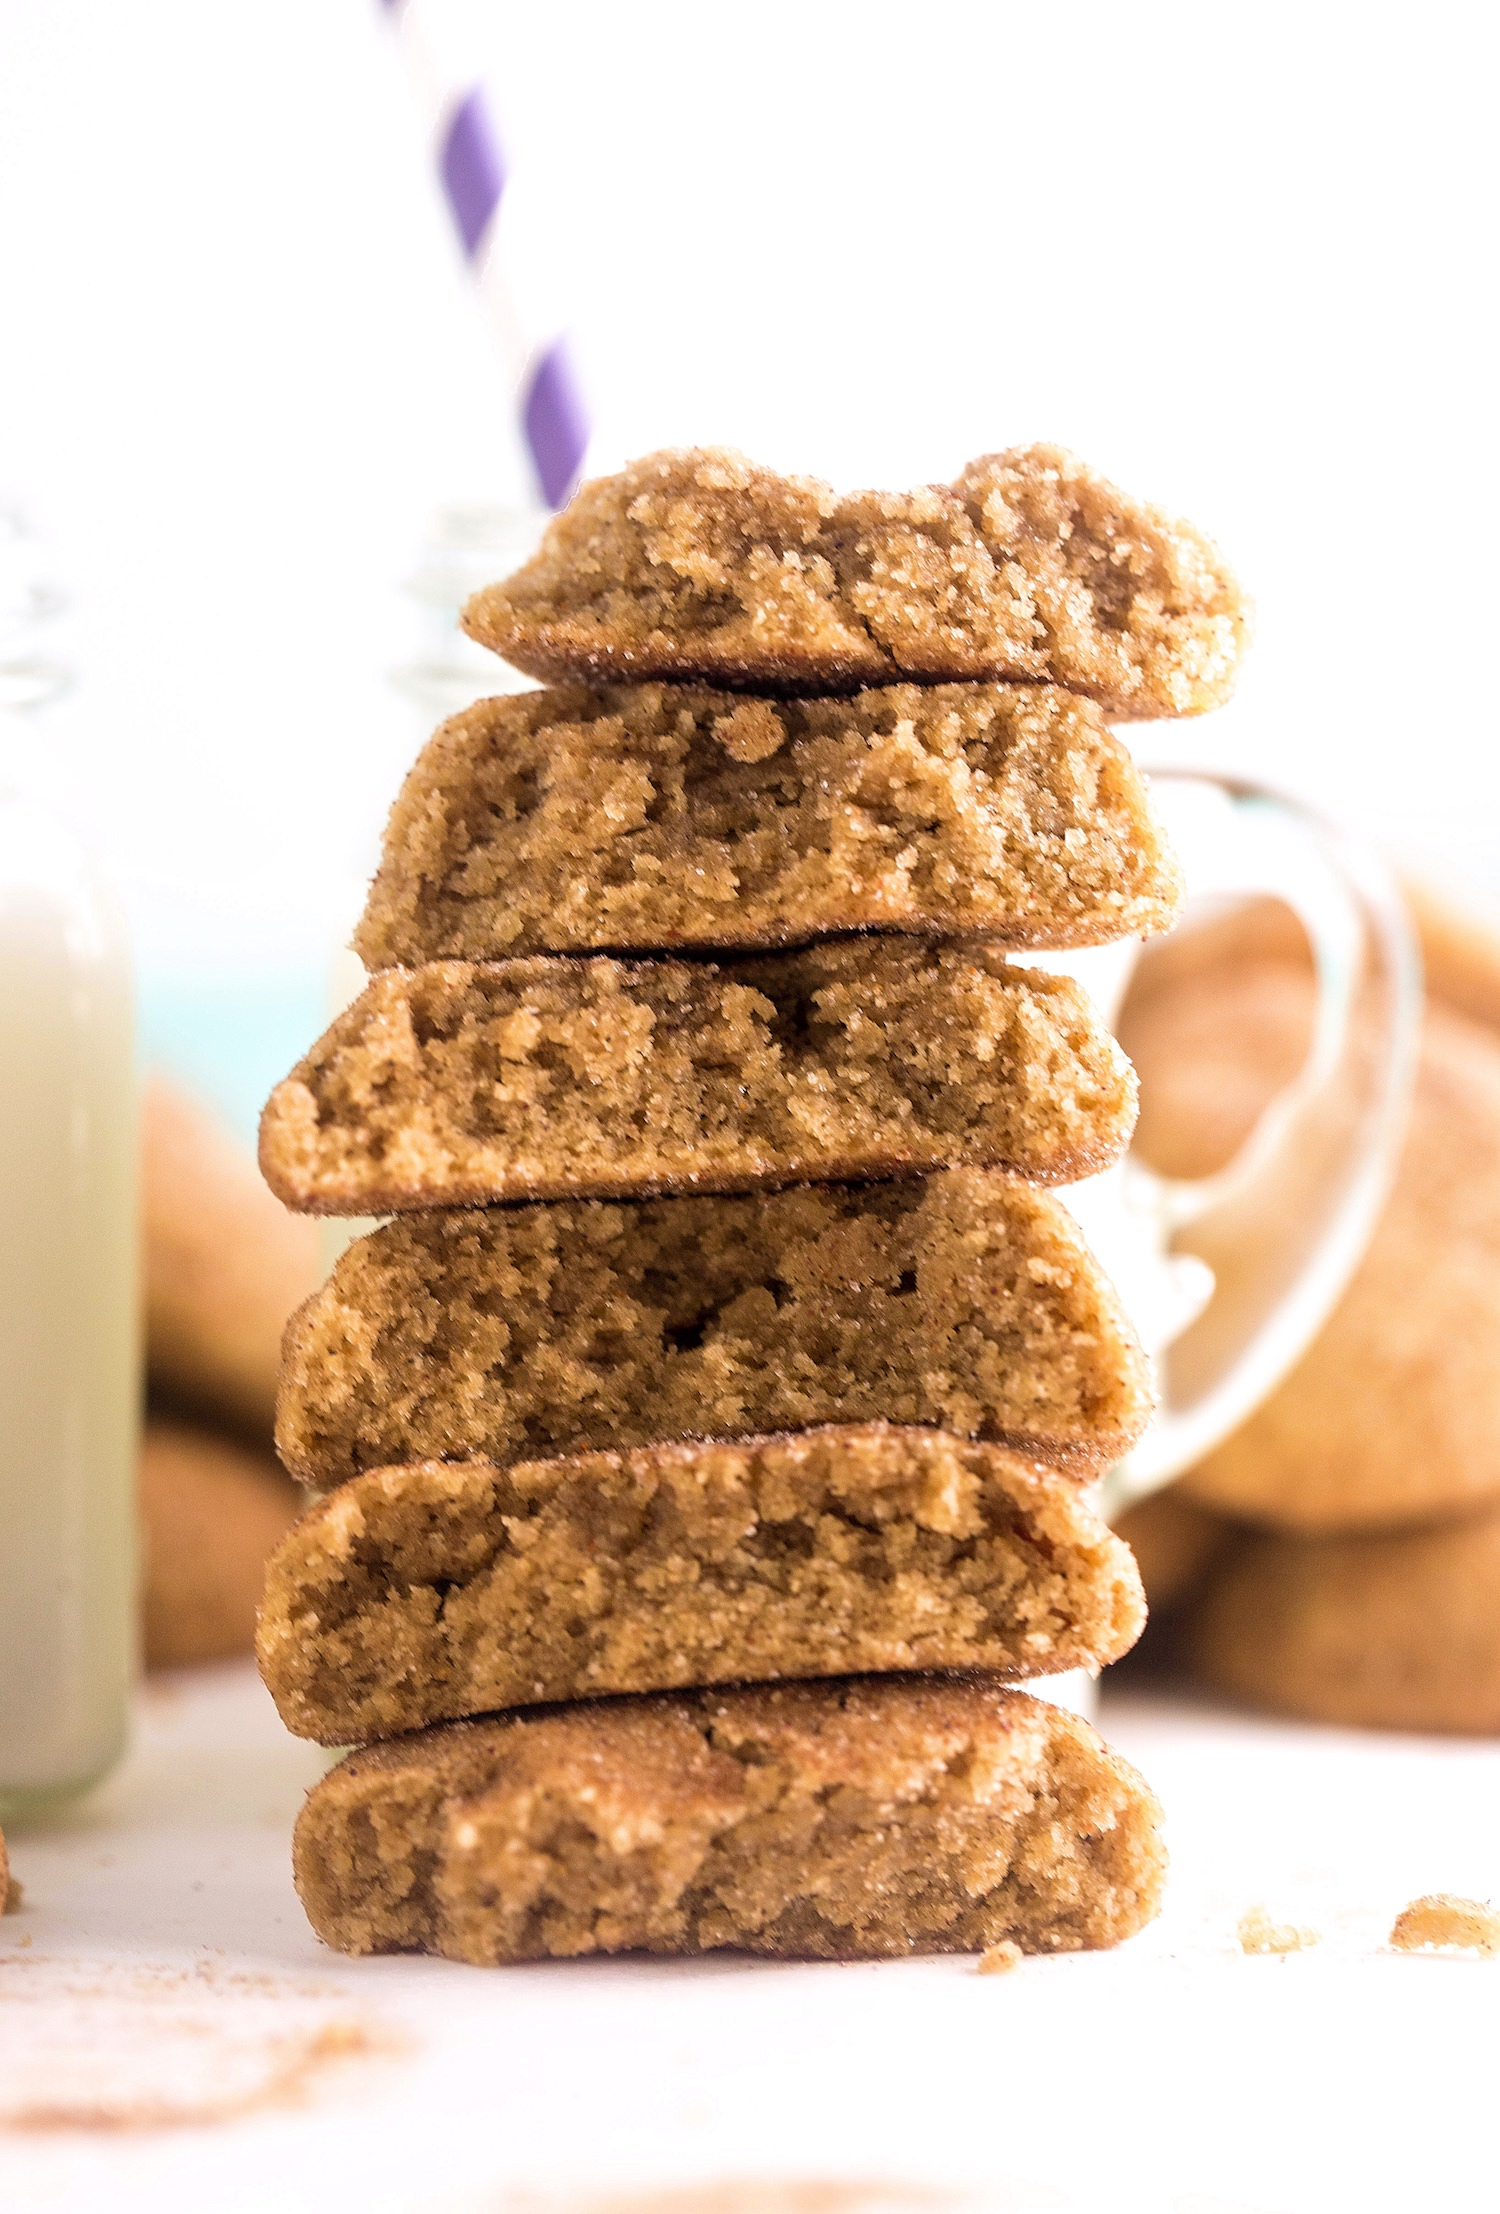 No-Butter Chai Spiced Cookies: soft, puffy, gooey, thick coconut oil cookies filled with and rolled in chai spices. Quick and easy! | TrufflesandTrends.com